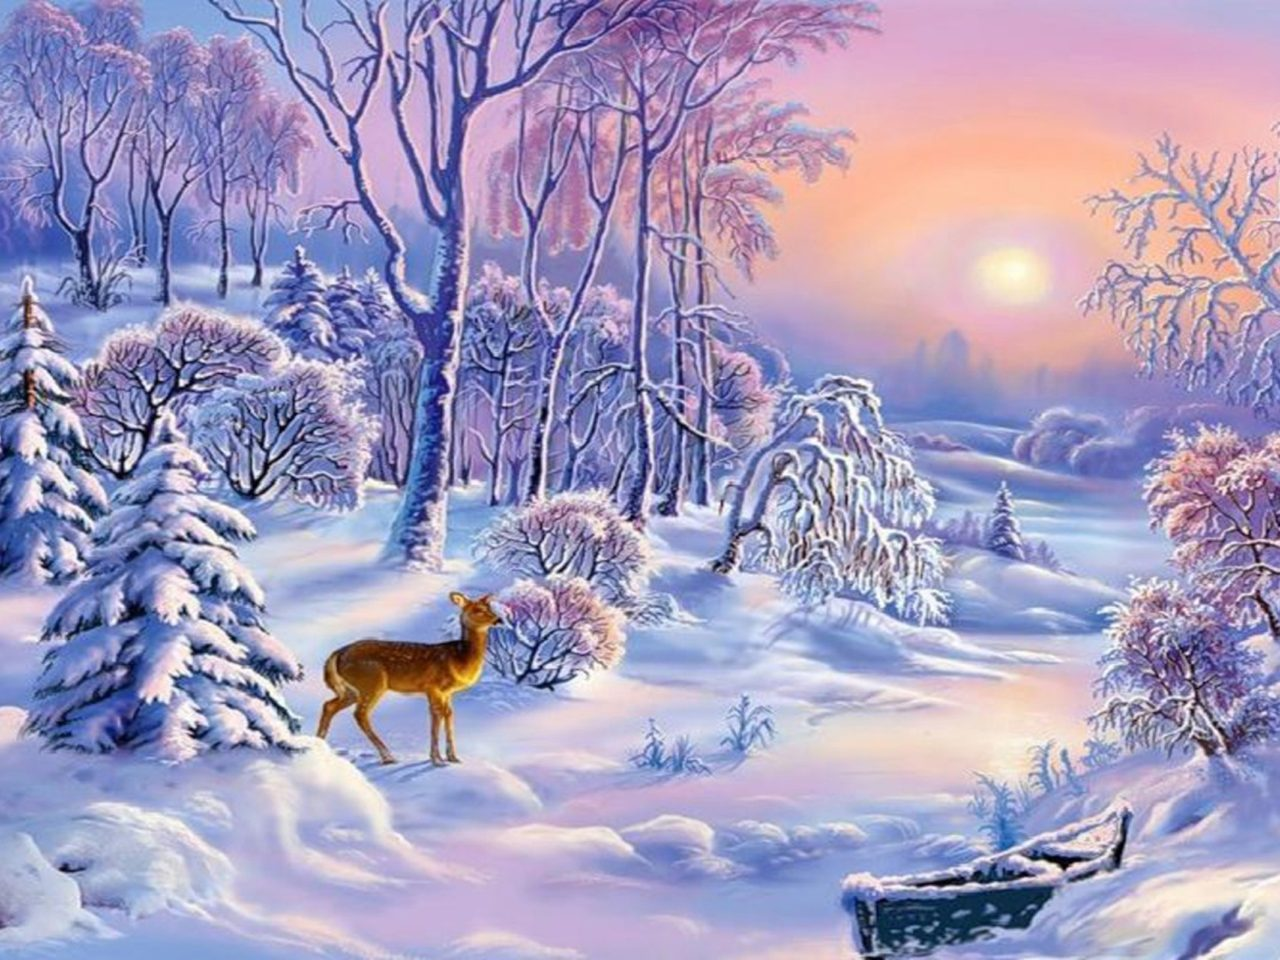 Beautiful Girl Wallpaper Pictures Download Landscape Winter Sun Boat Snow Trees Deer